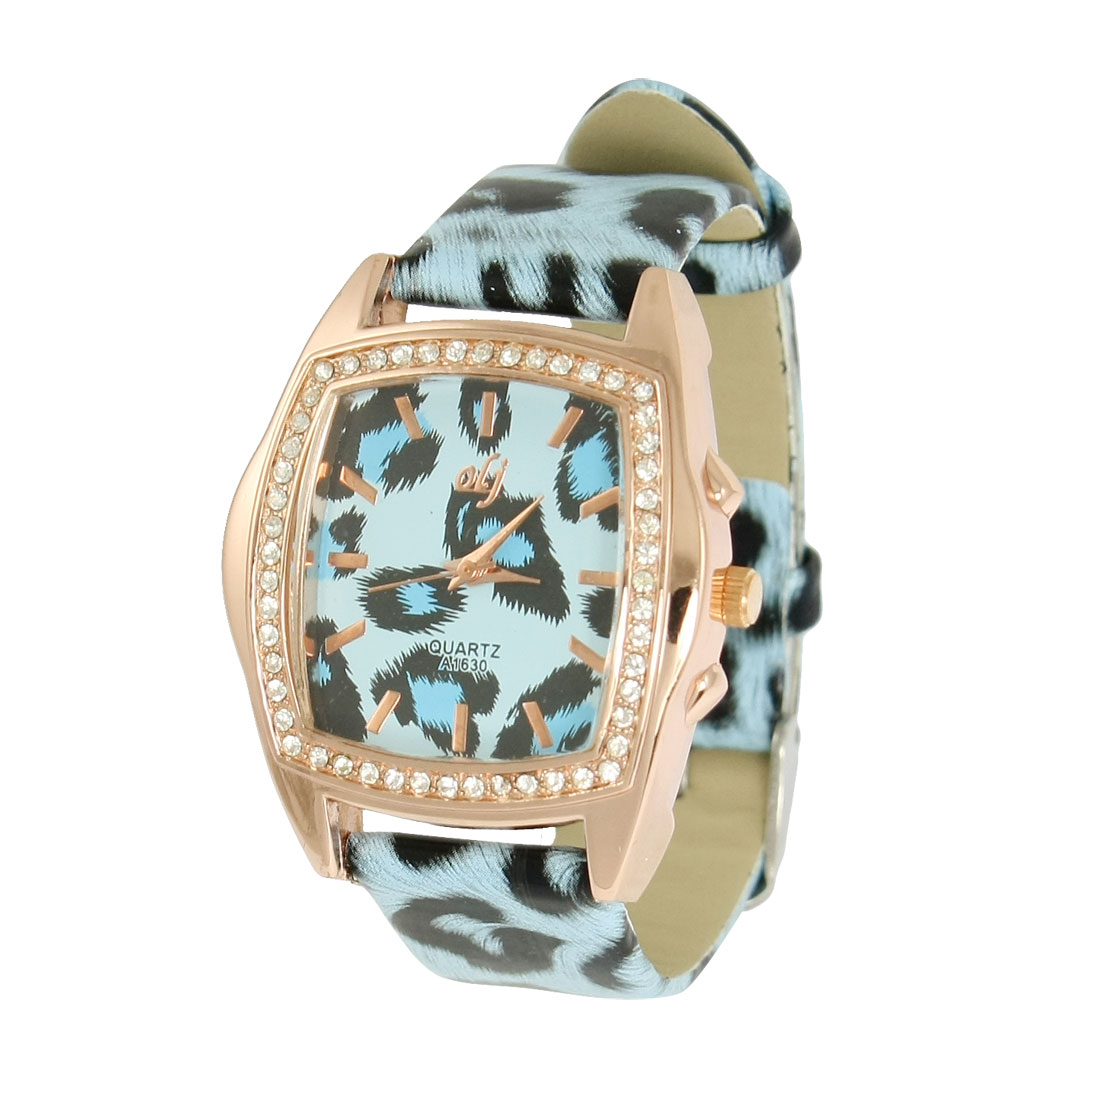 Panther Patterns Fanx Leather Band Square Metal Base Wrist Watch Blue